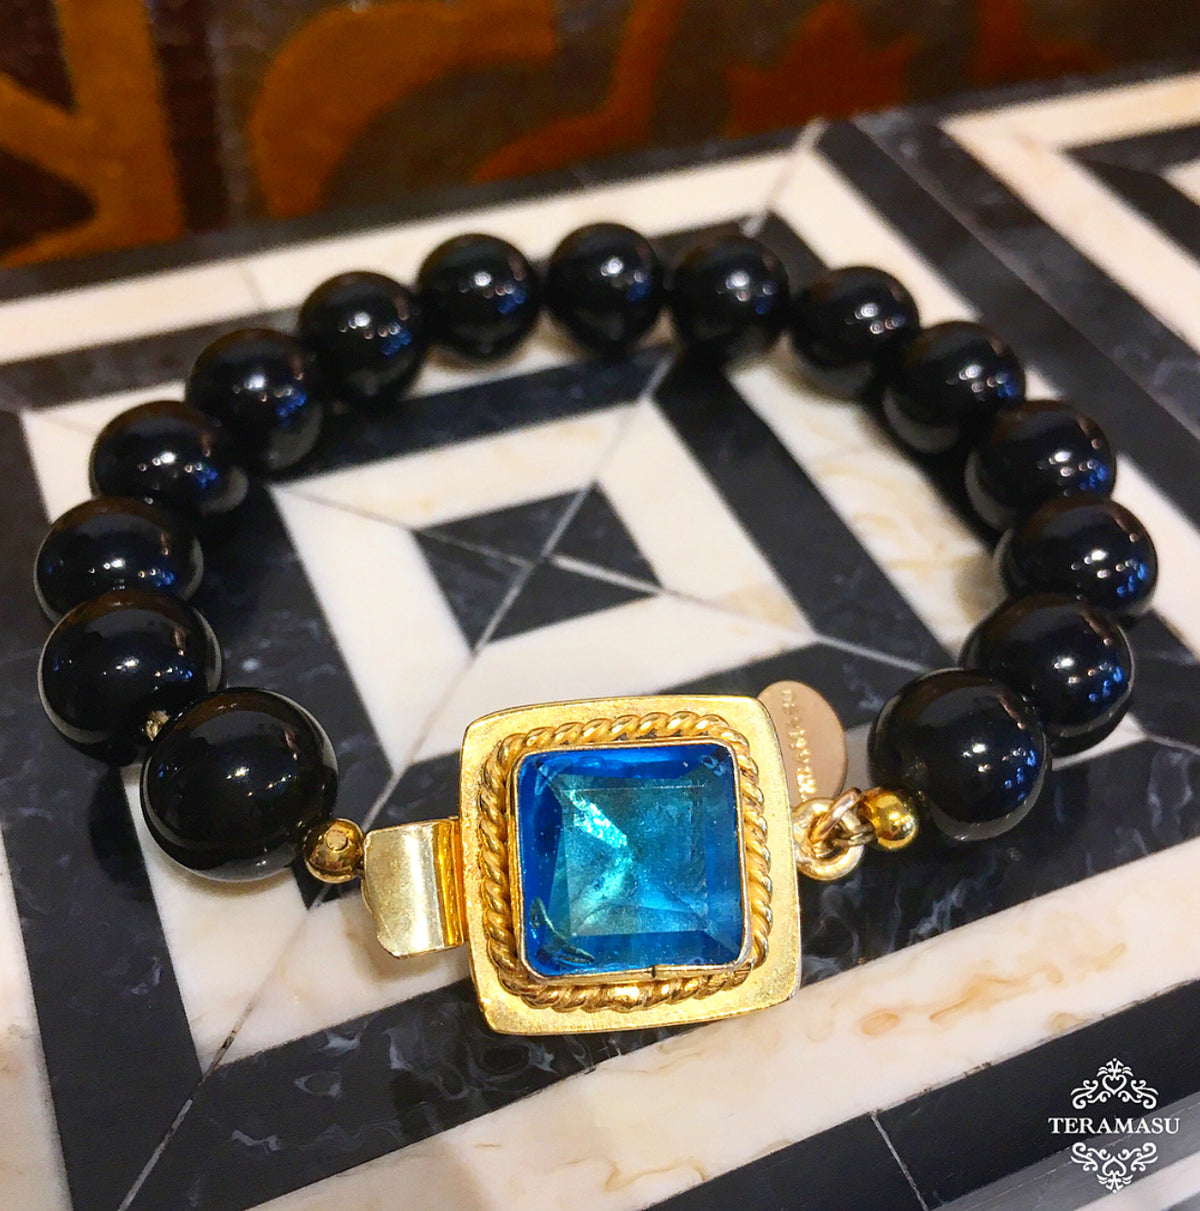 Living Ladylike: Add a Little Sparkle to Your Style with our Teramasu Black Onyx and One of a Kind Blue Crystal Stone Box Clasp Bracelet